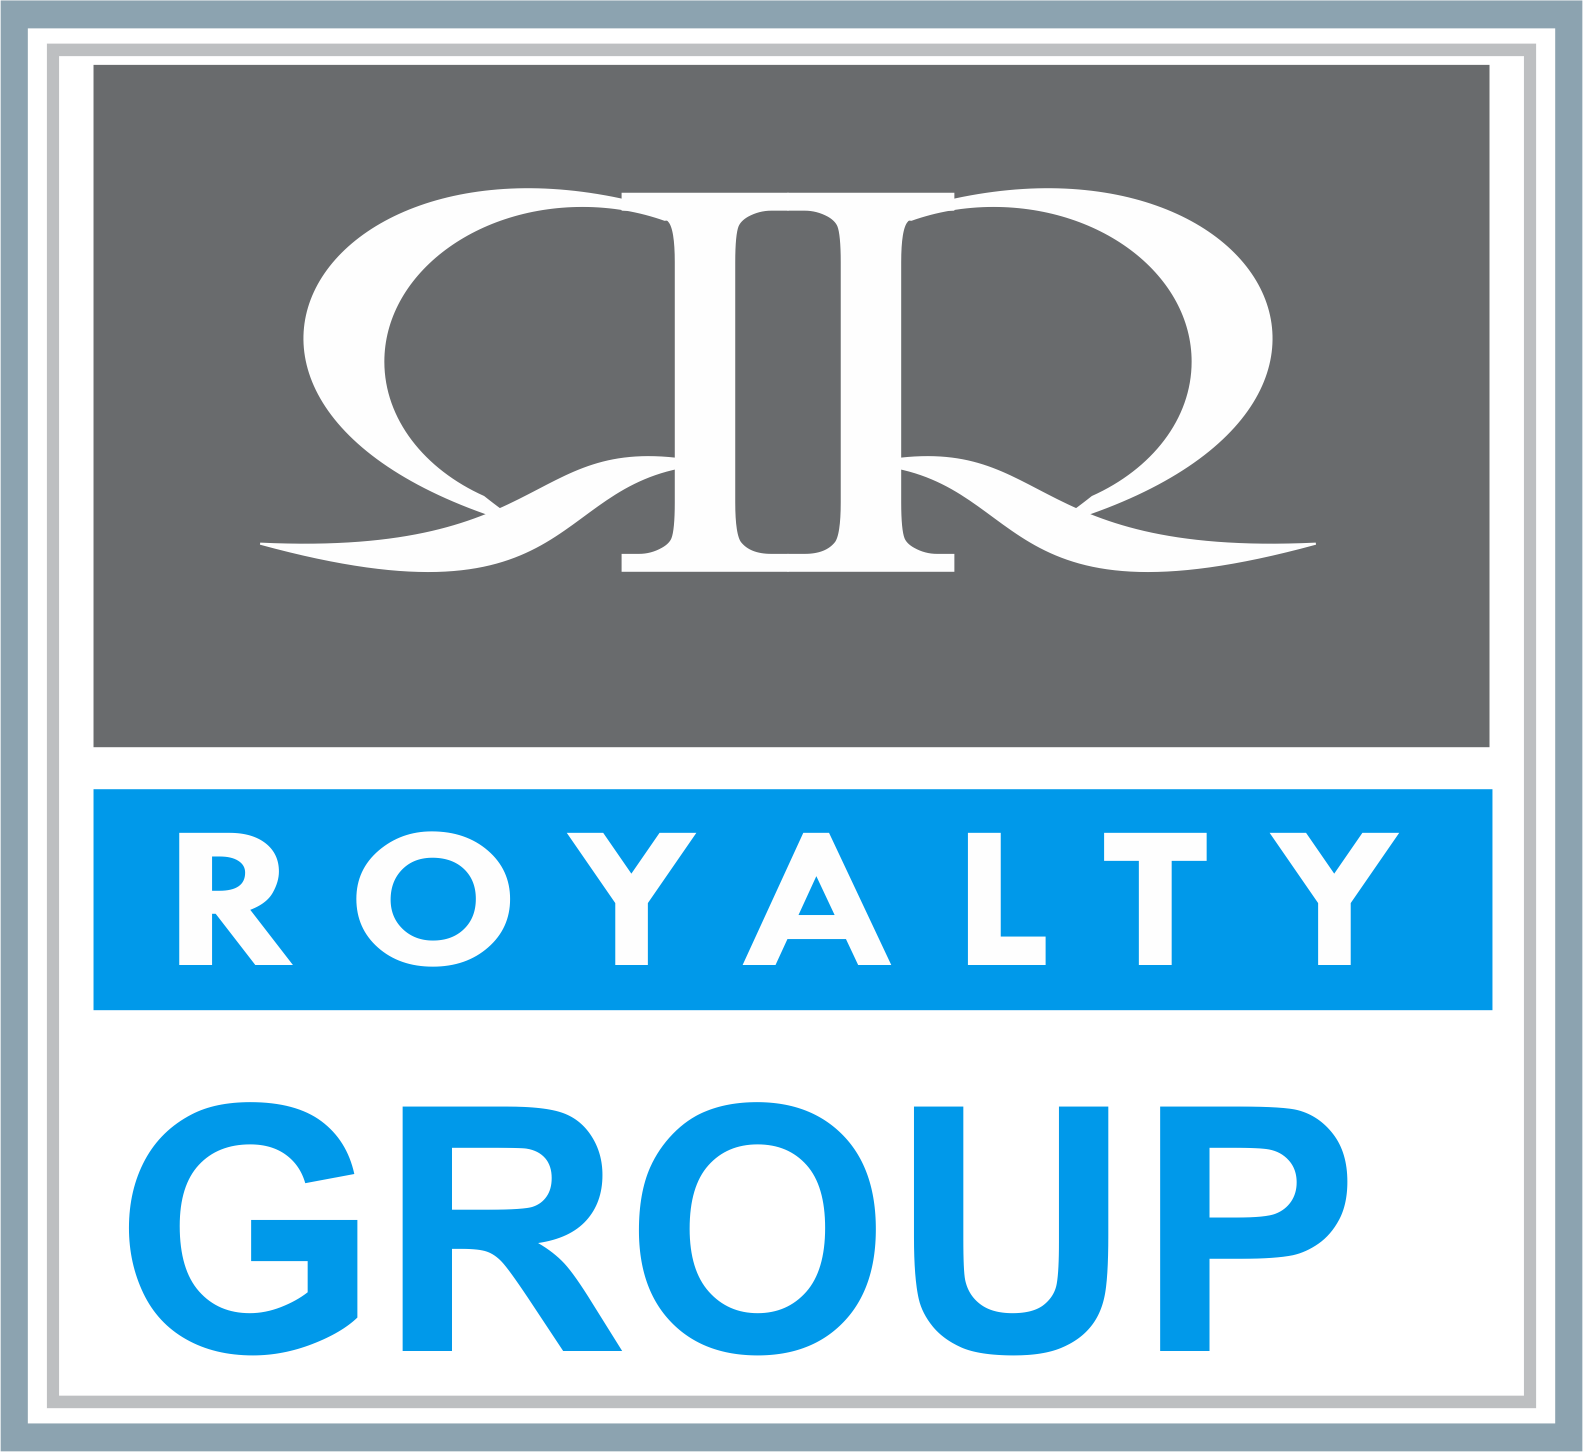 royalty group logo